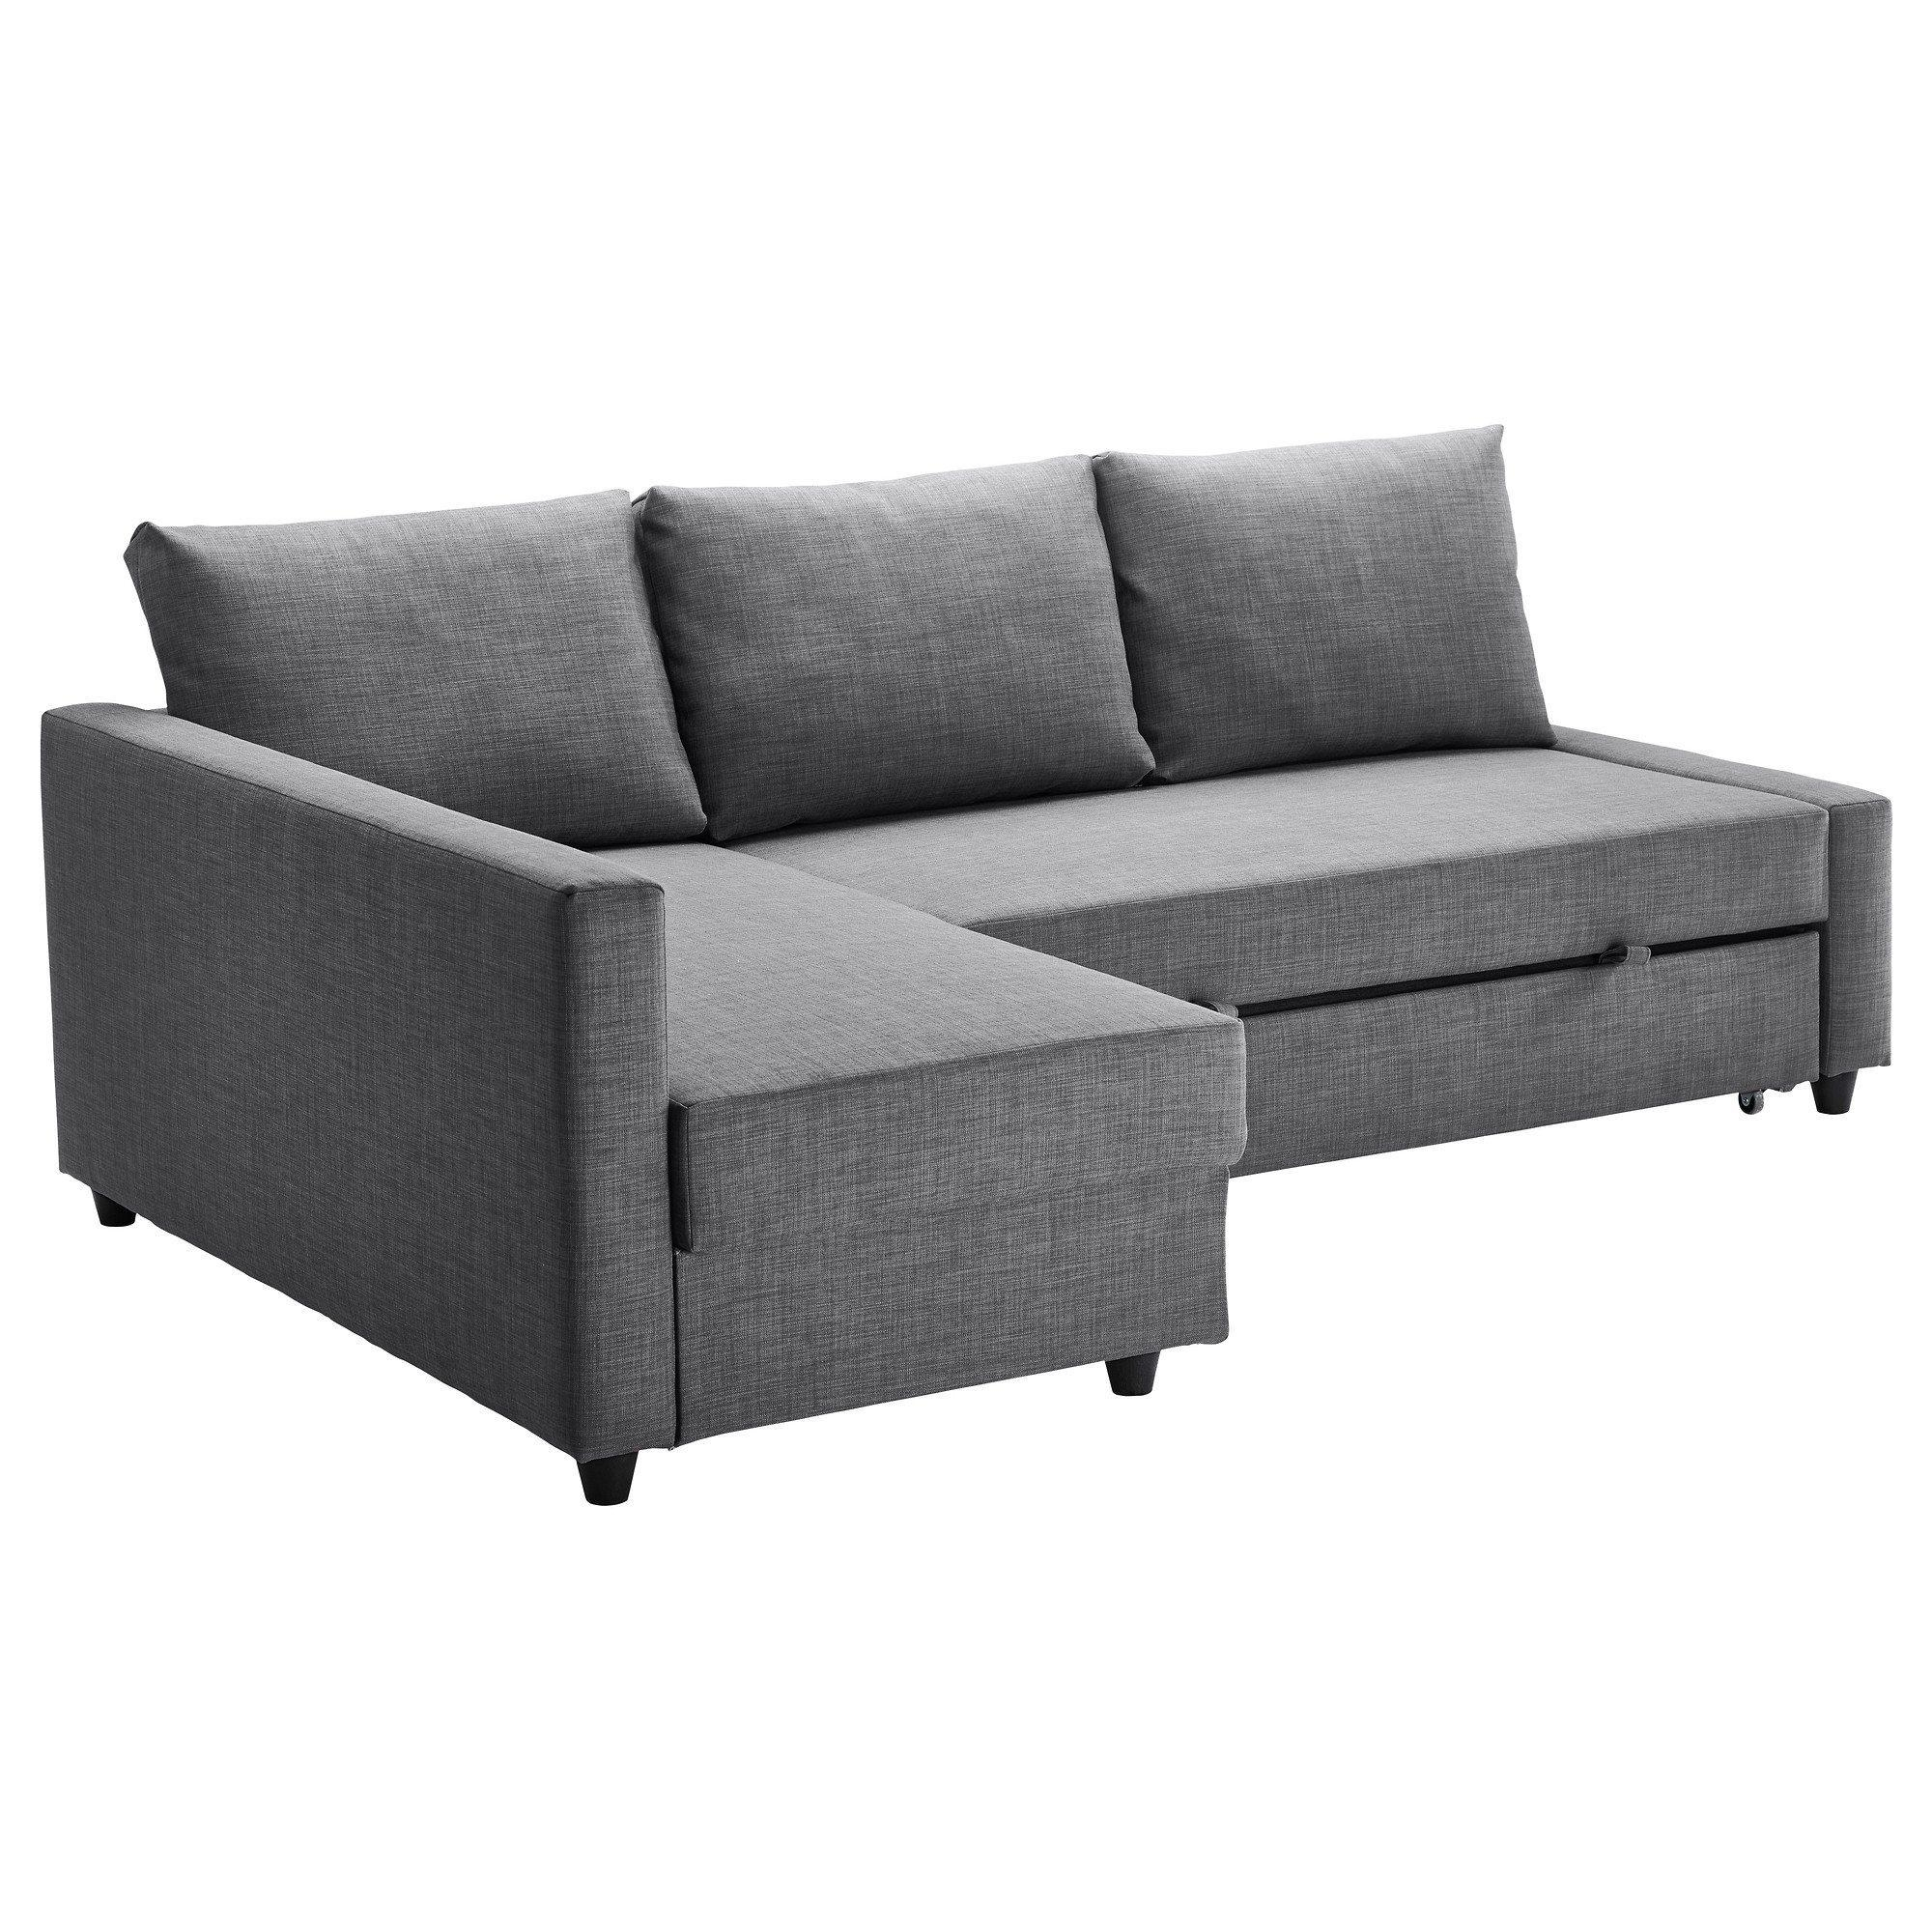 20 Best Collection Of Sleeper Sofa Sectional Ikea Sofa Ideas